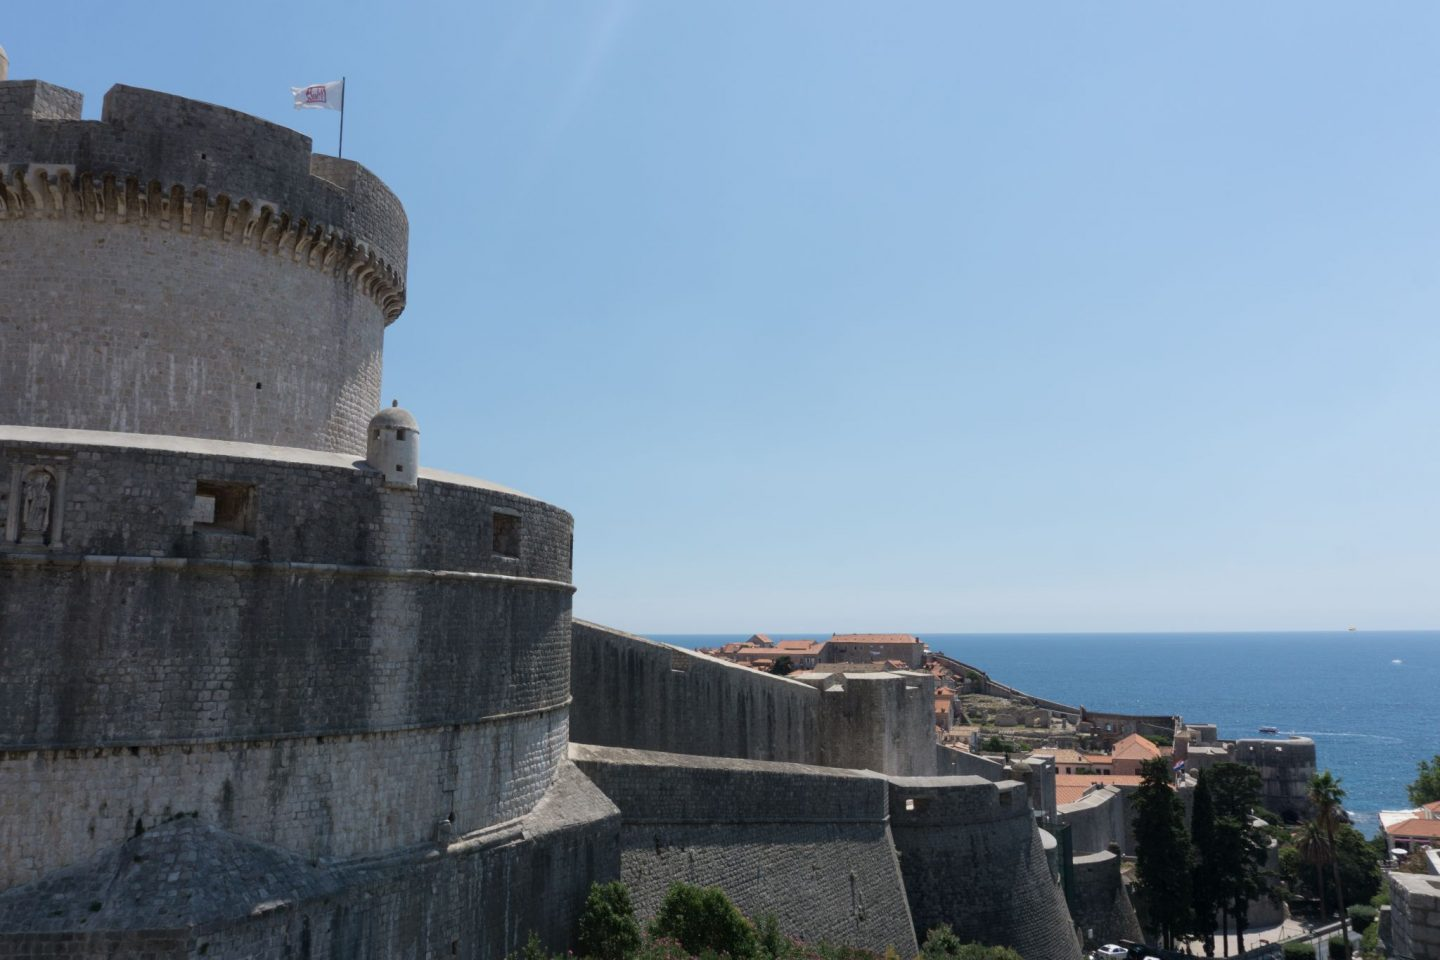 Travel Croatia Game of Thrones walking tour Dubrovnik City Guide Nadia El Ferdaoussi the daily s'elf Dubrovnik Old Town City Walls